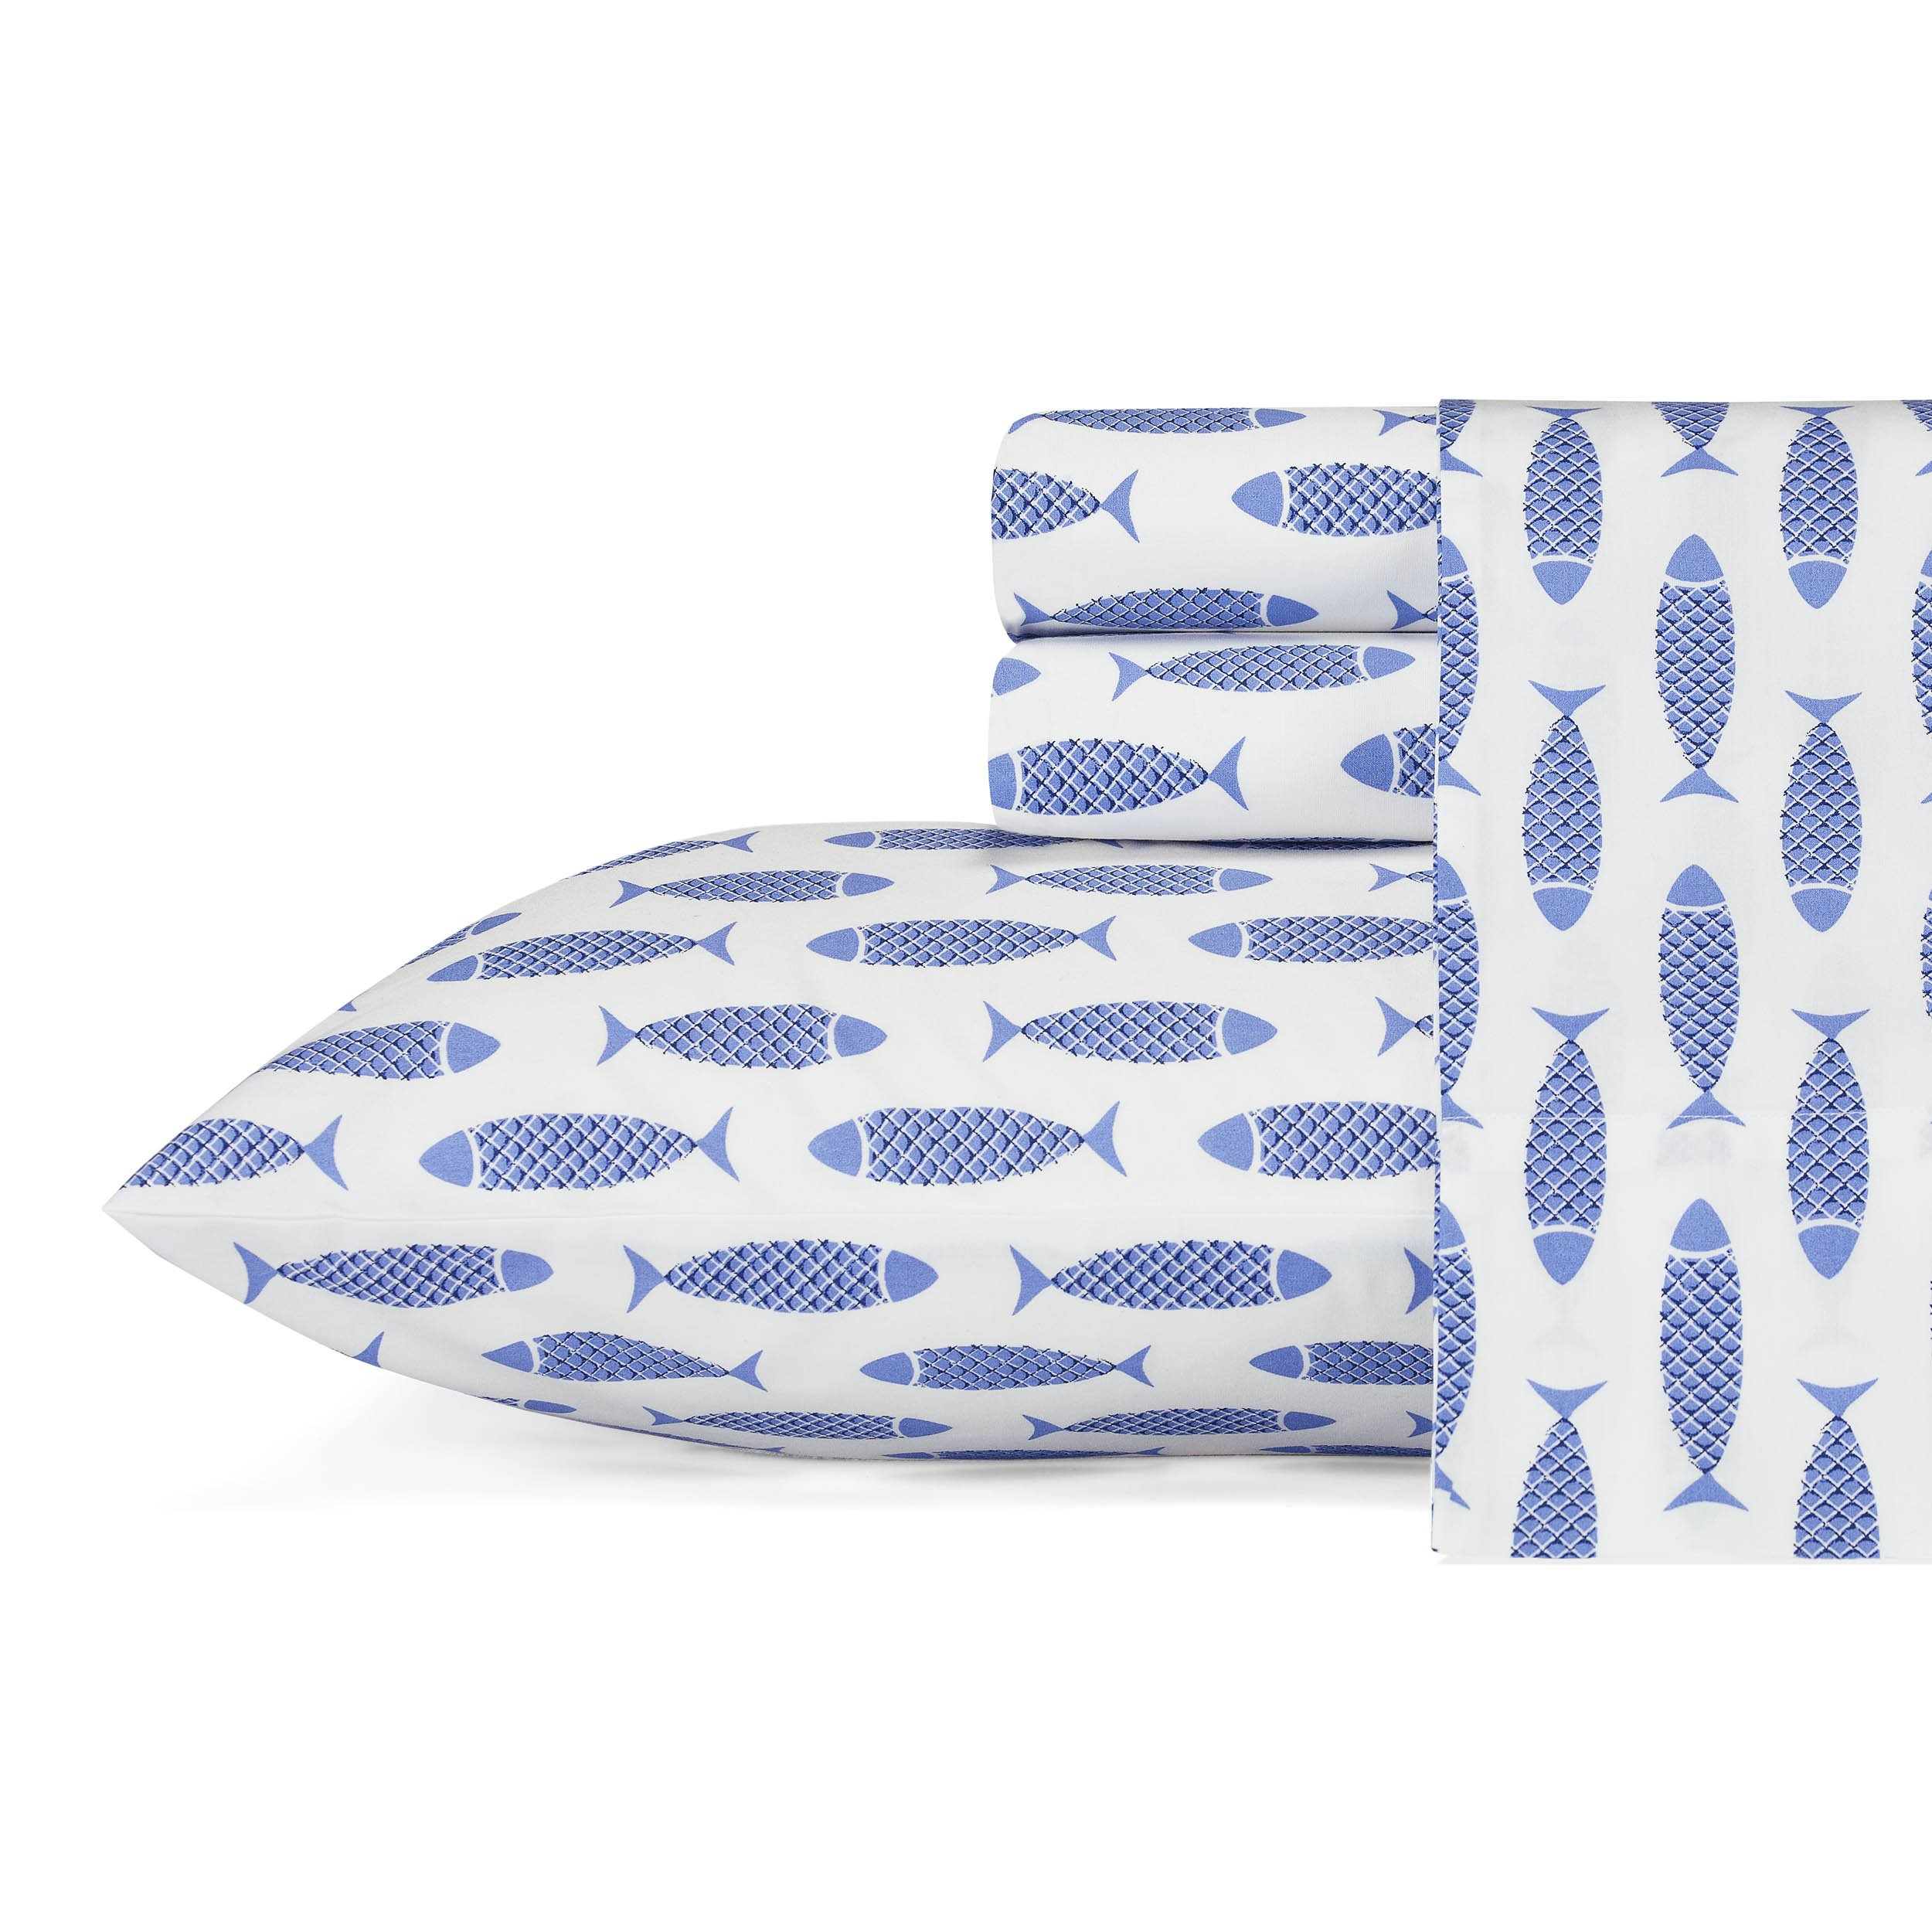 Nautica Woodblock Fish Cotton Sheet Set, Queen, Blue